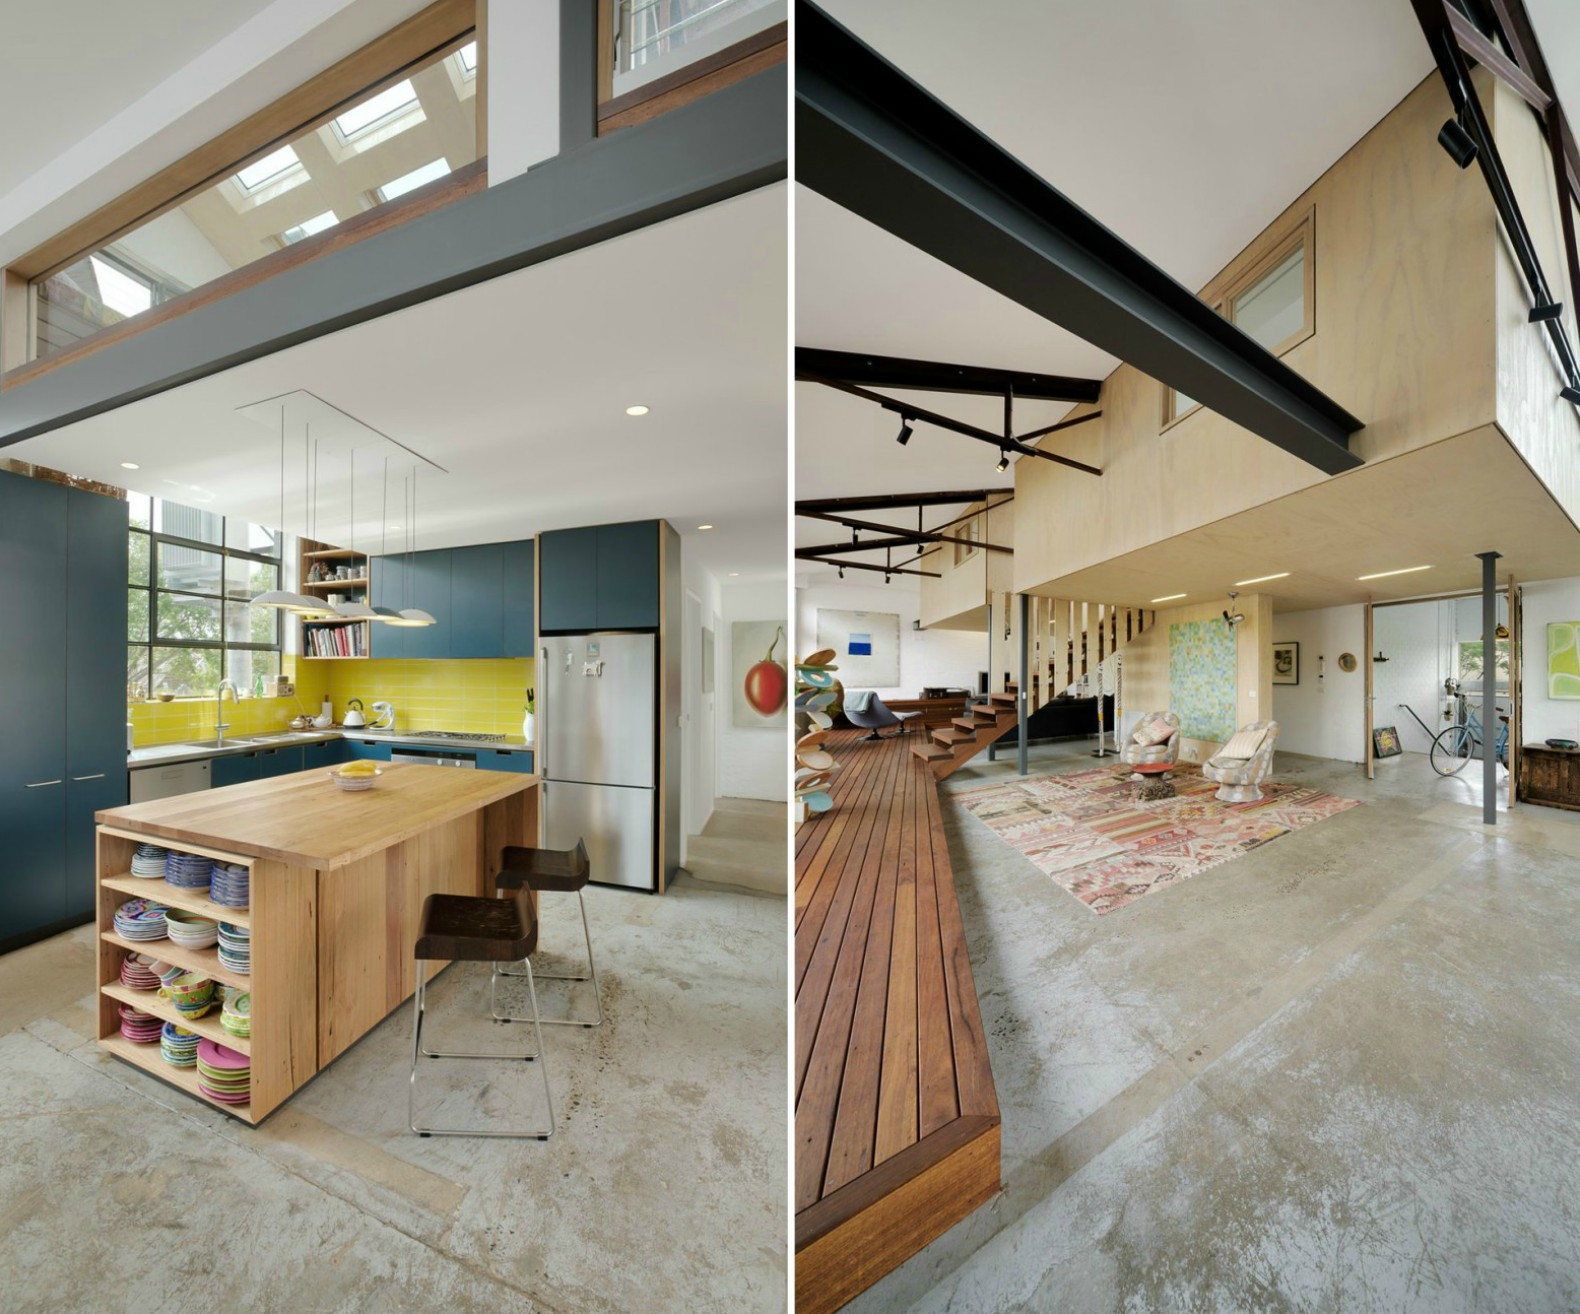 Melbourne architects upcycle 1960s Warehouse into stunning energy ...